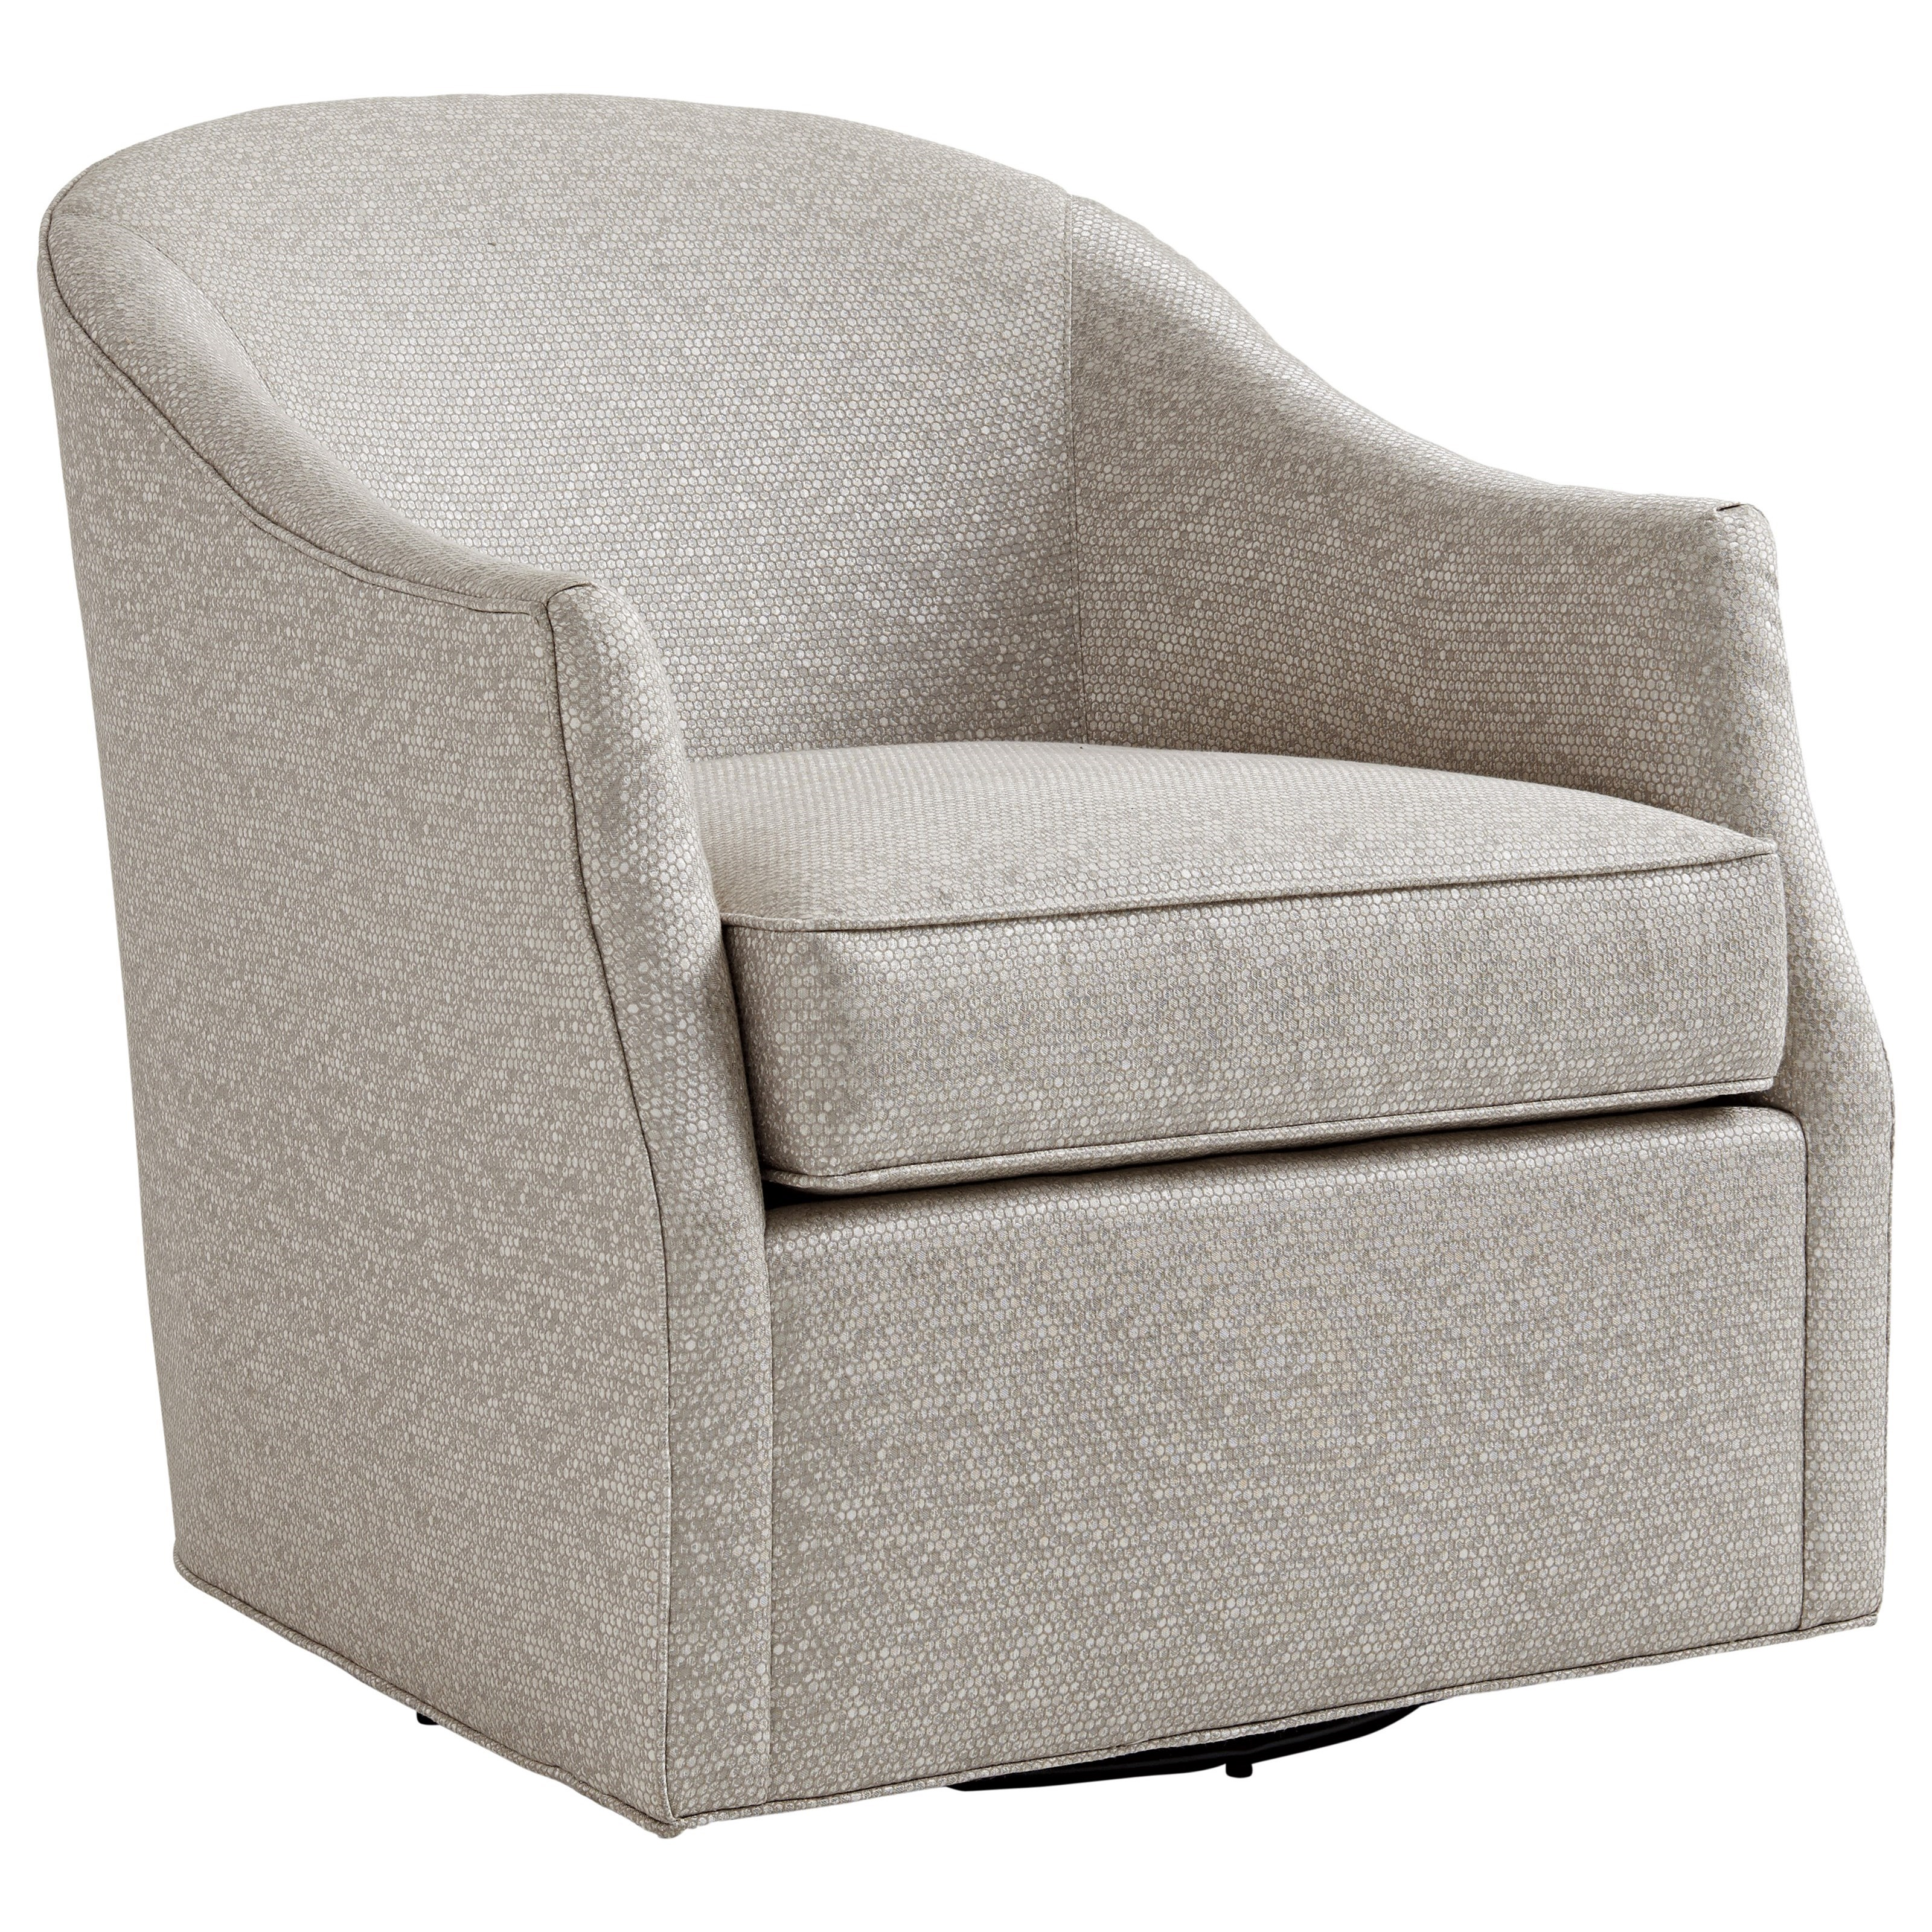 Ariana Escala Swivel Chair by Lexington at Jacksonville Furniture Mart